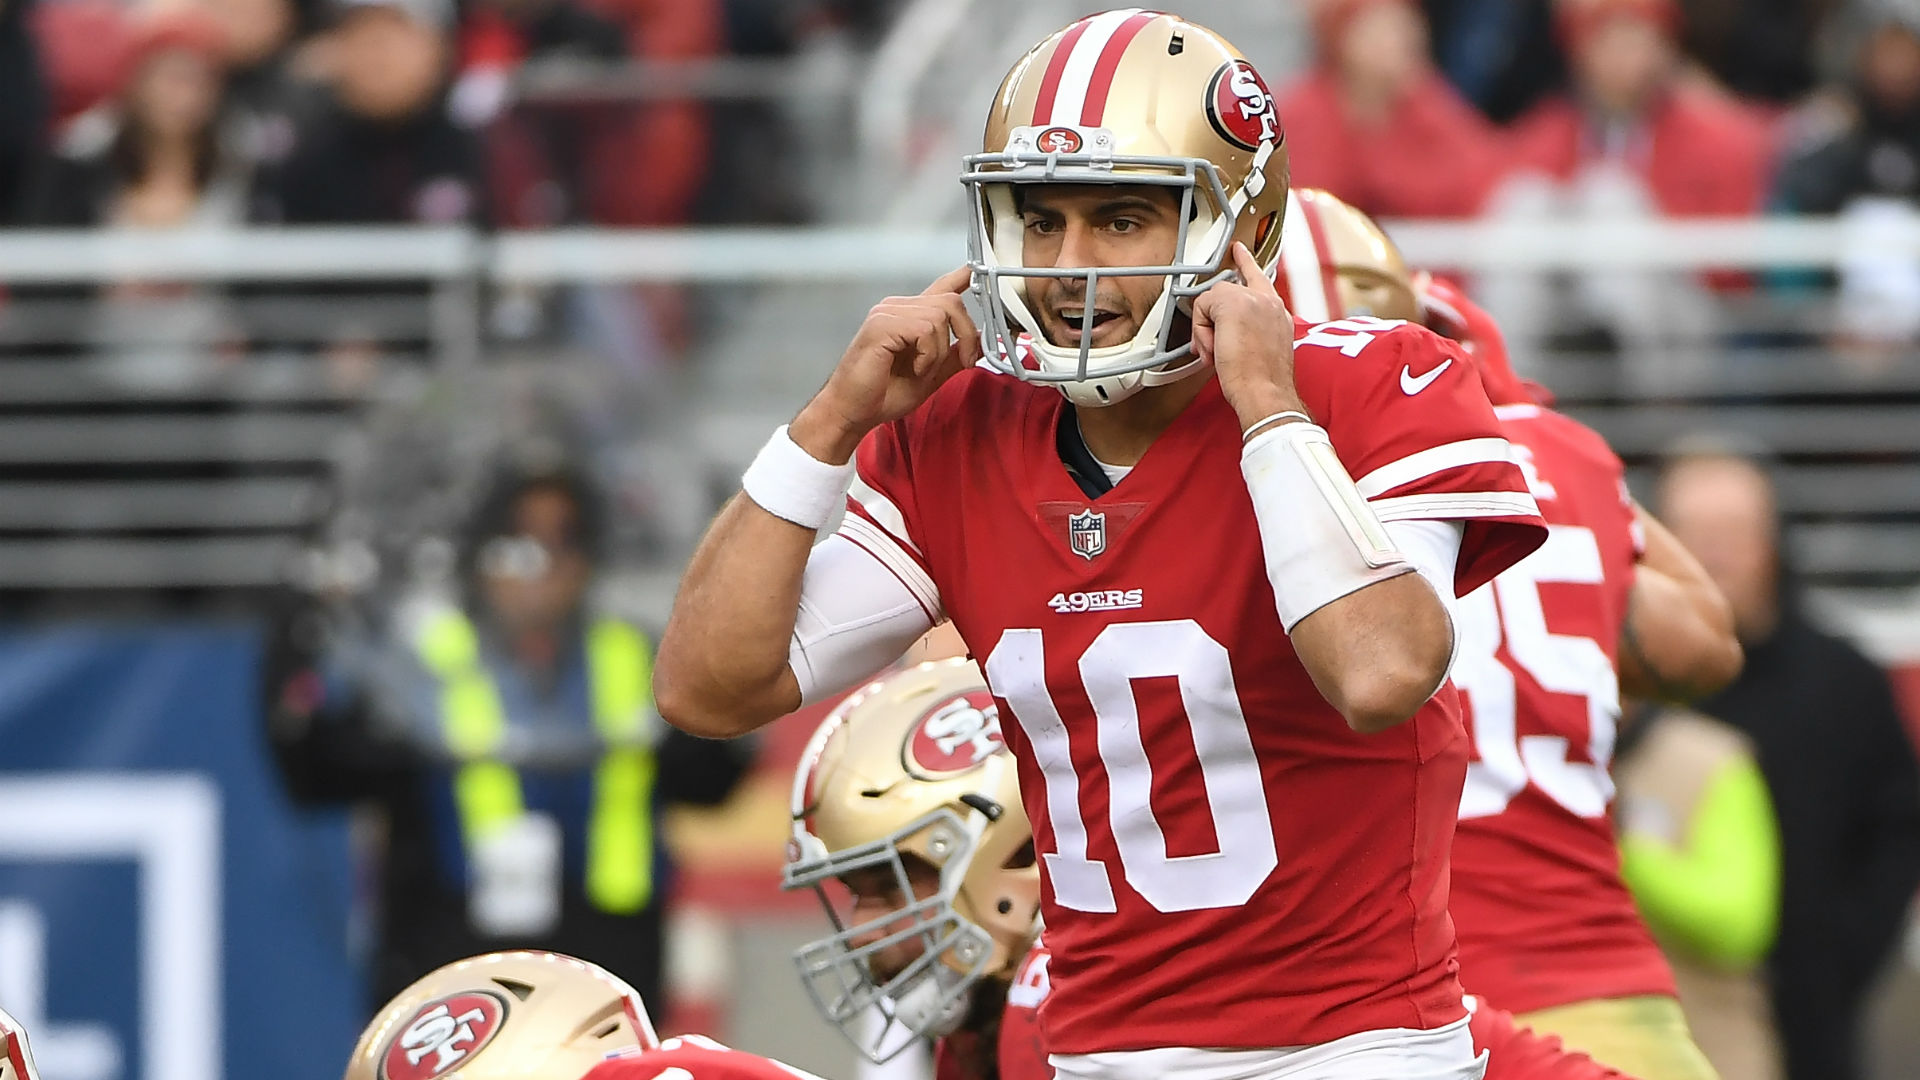 Jimmy-garoppolo-122717-getty-ftrjpg_hrs7rretszgn182hdhf0c4w0h